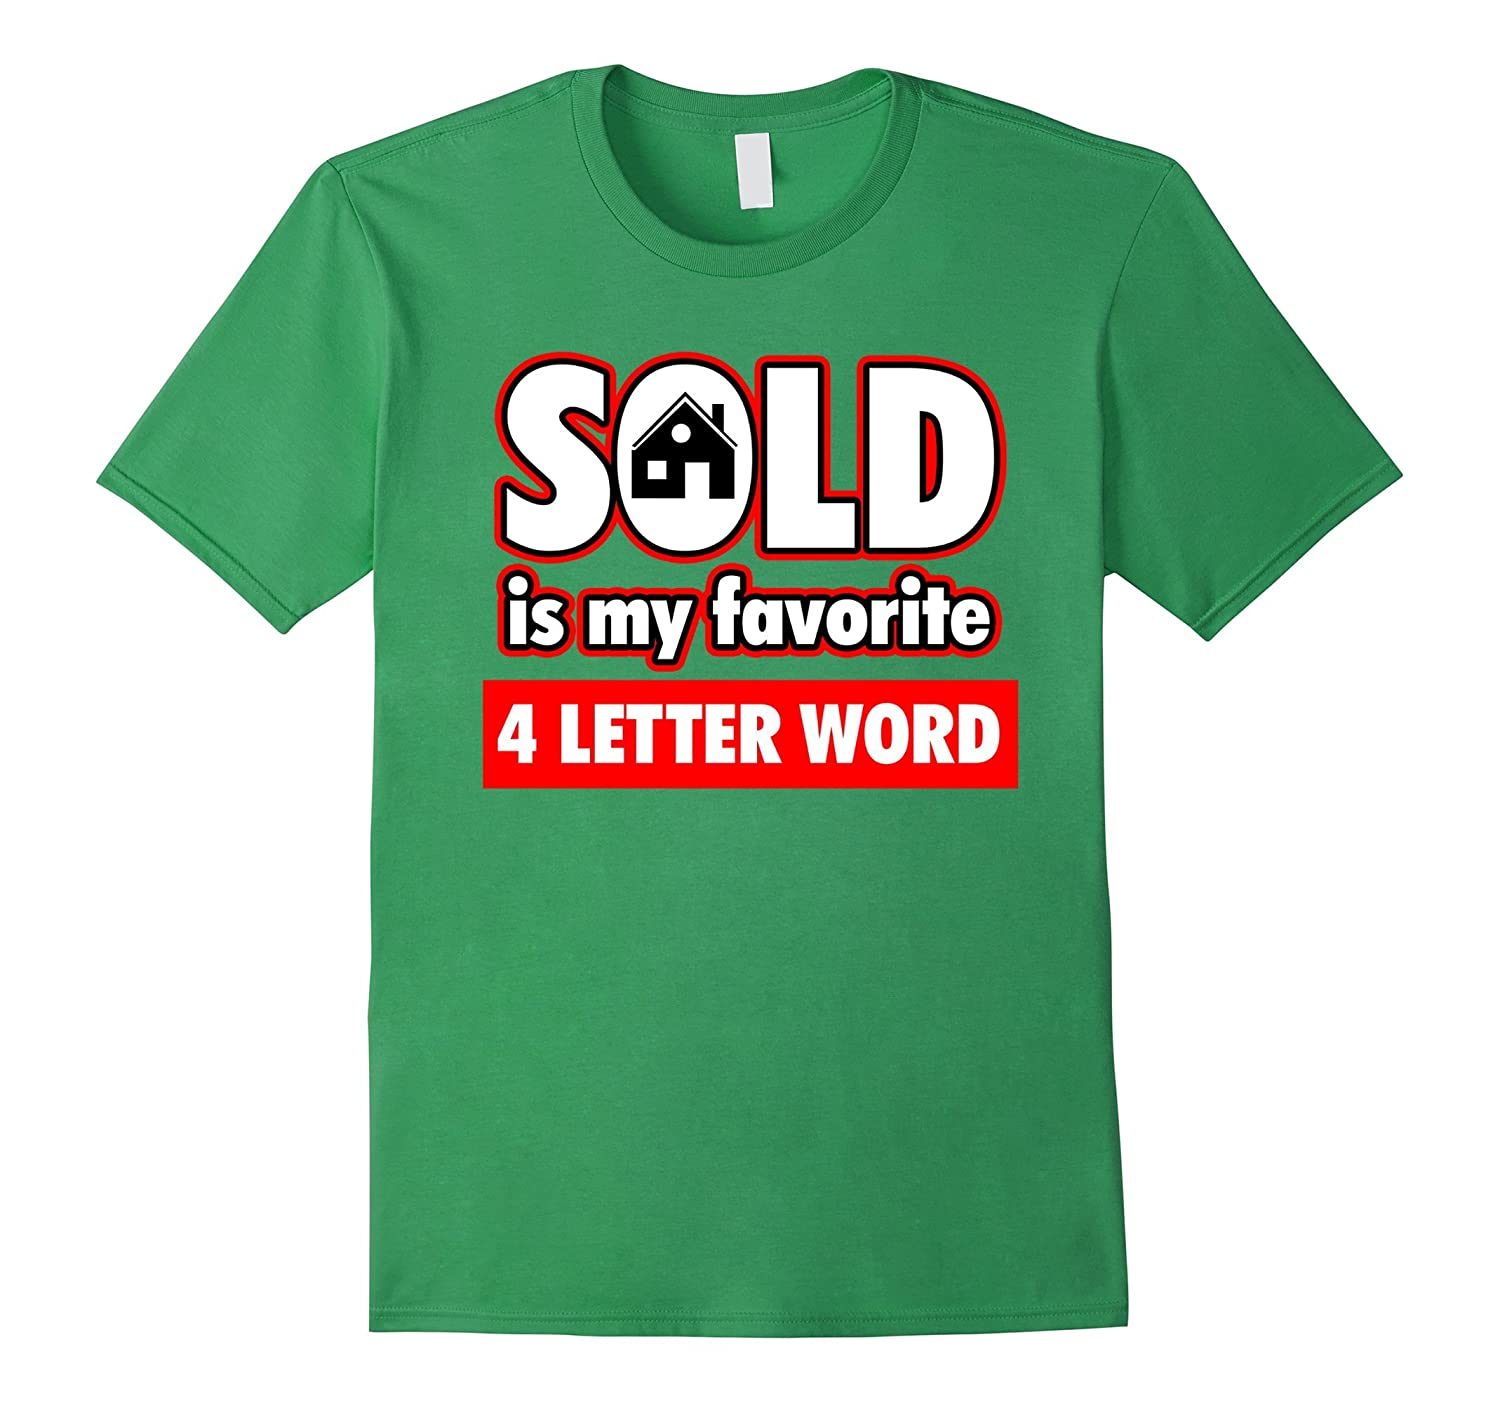 Funny Real Estate Shirt - SOLD IS MY FAVORITE 4 LETTER WORD!-Art